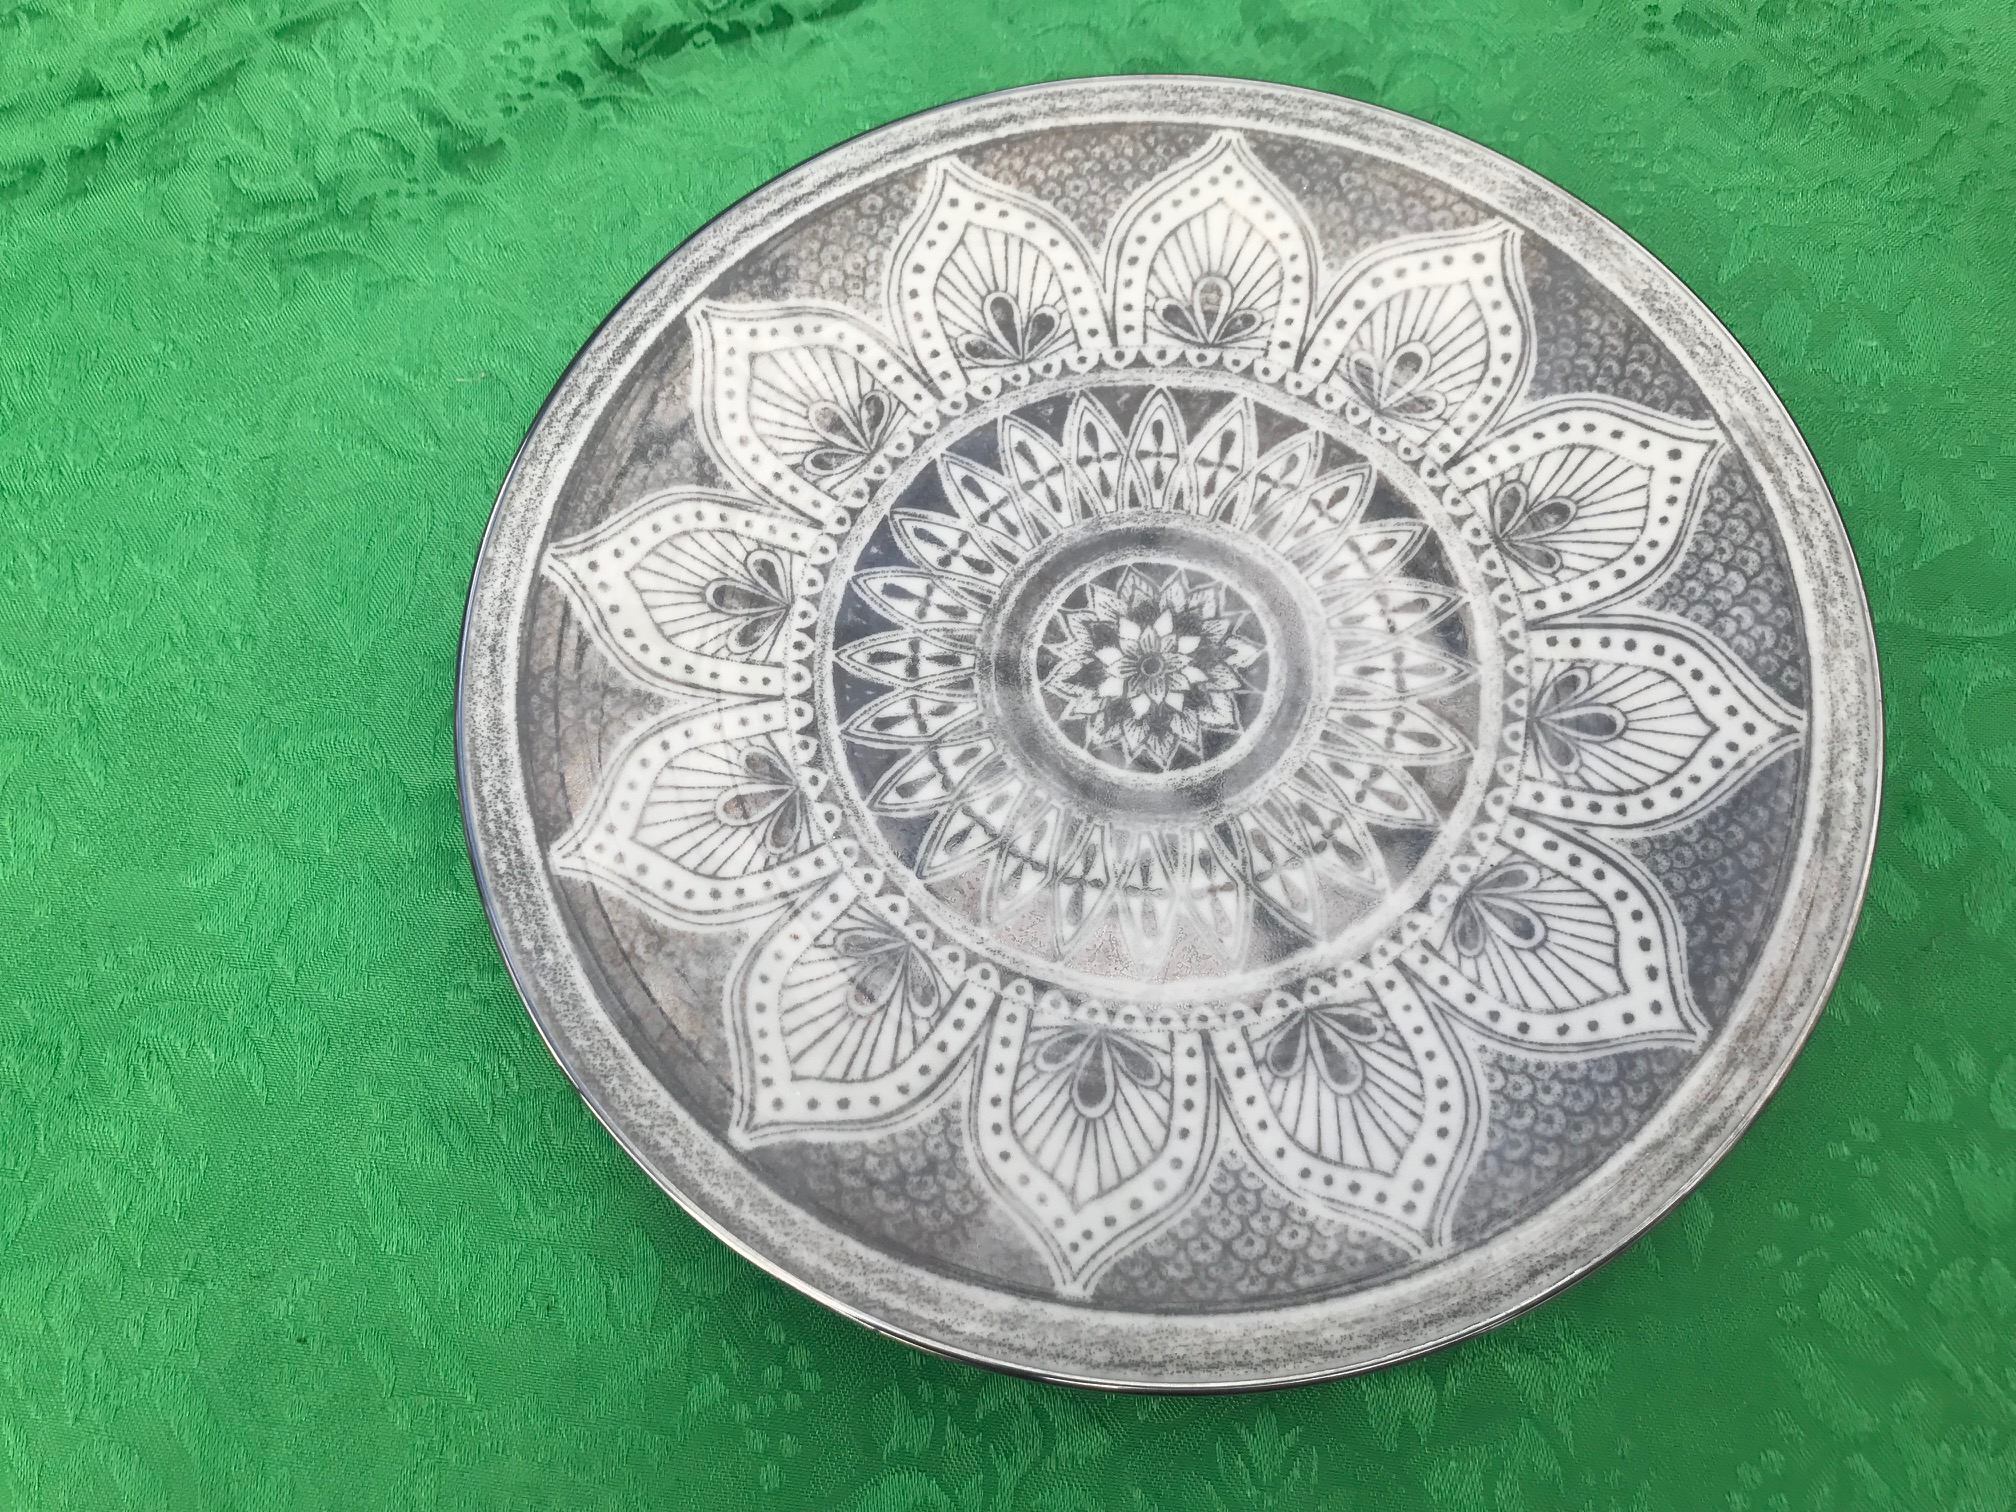 Vintage (c. 1950s ?) Franciscan Masterpiece Minaret China (Silver Pattern): 123,800 ppm Lead. These pieces are *NOT* safe for food use.